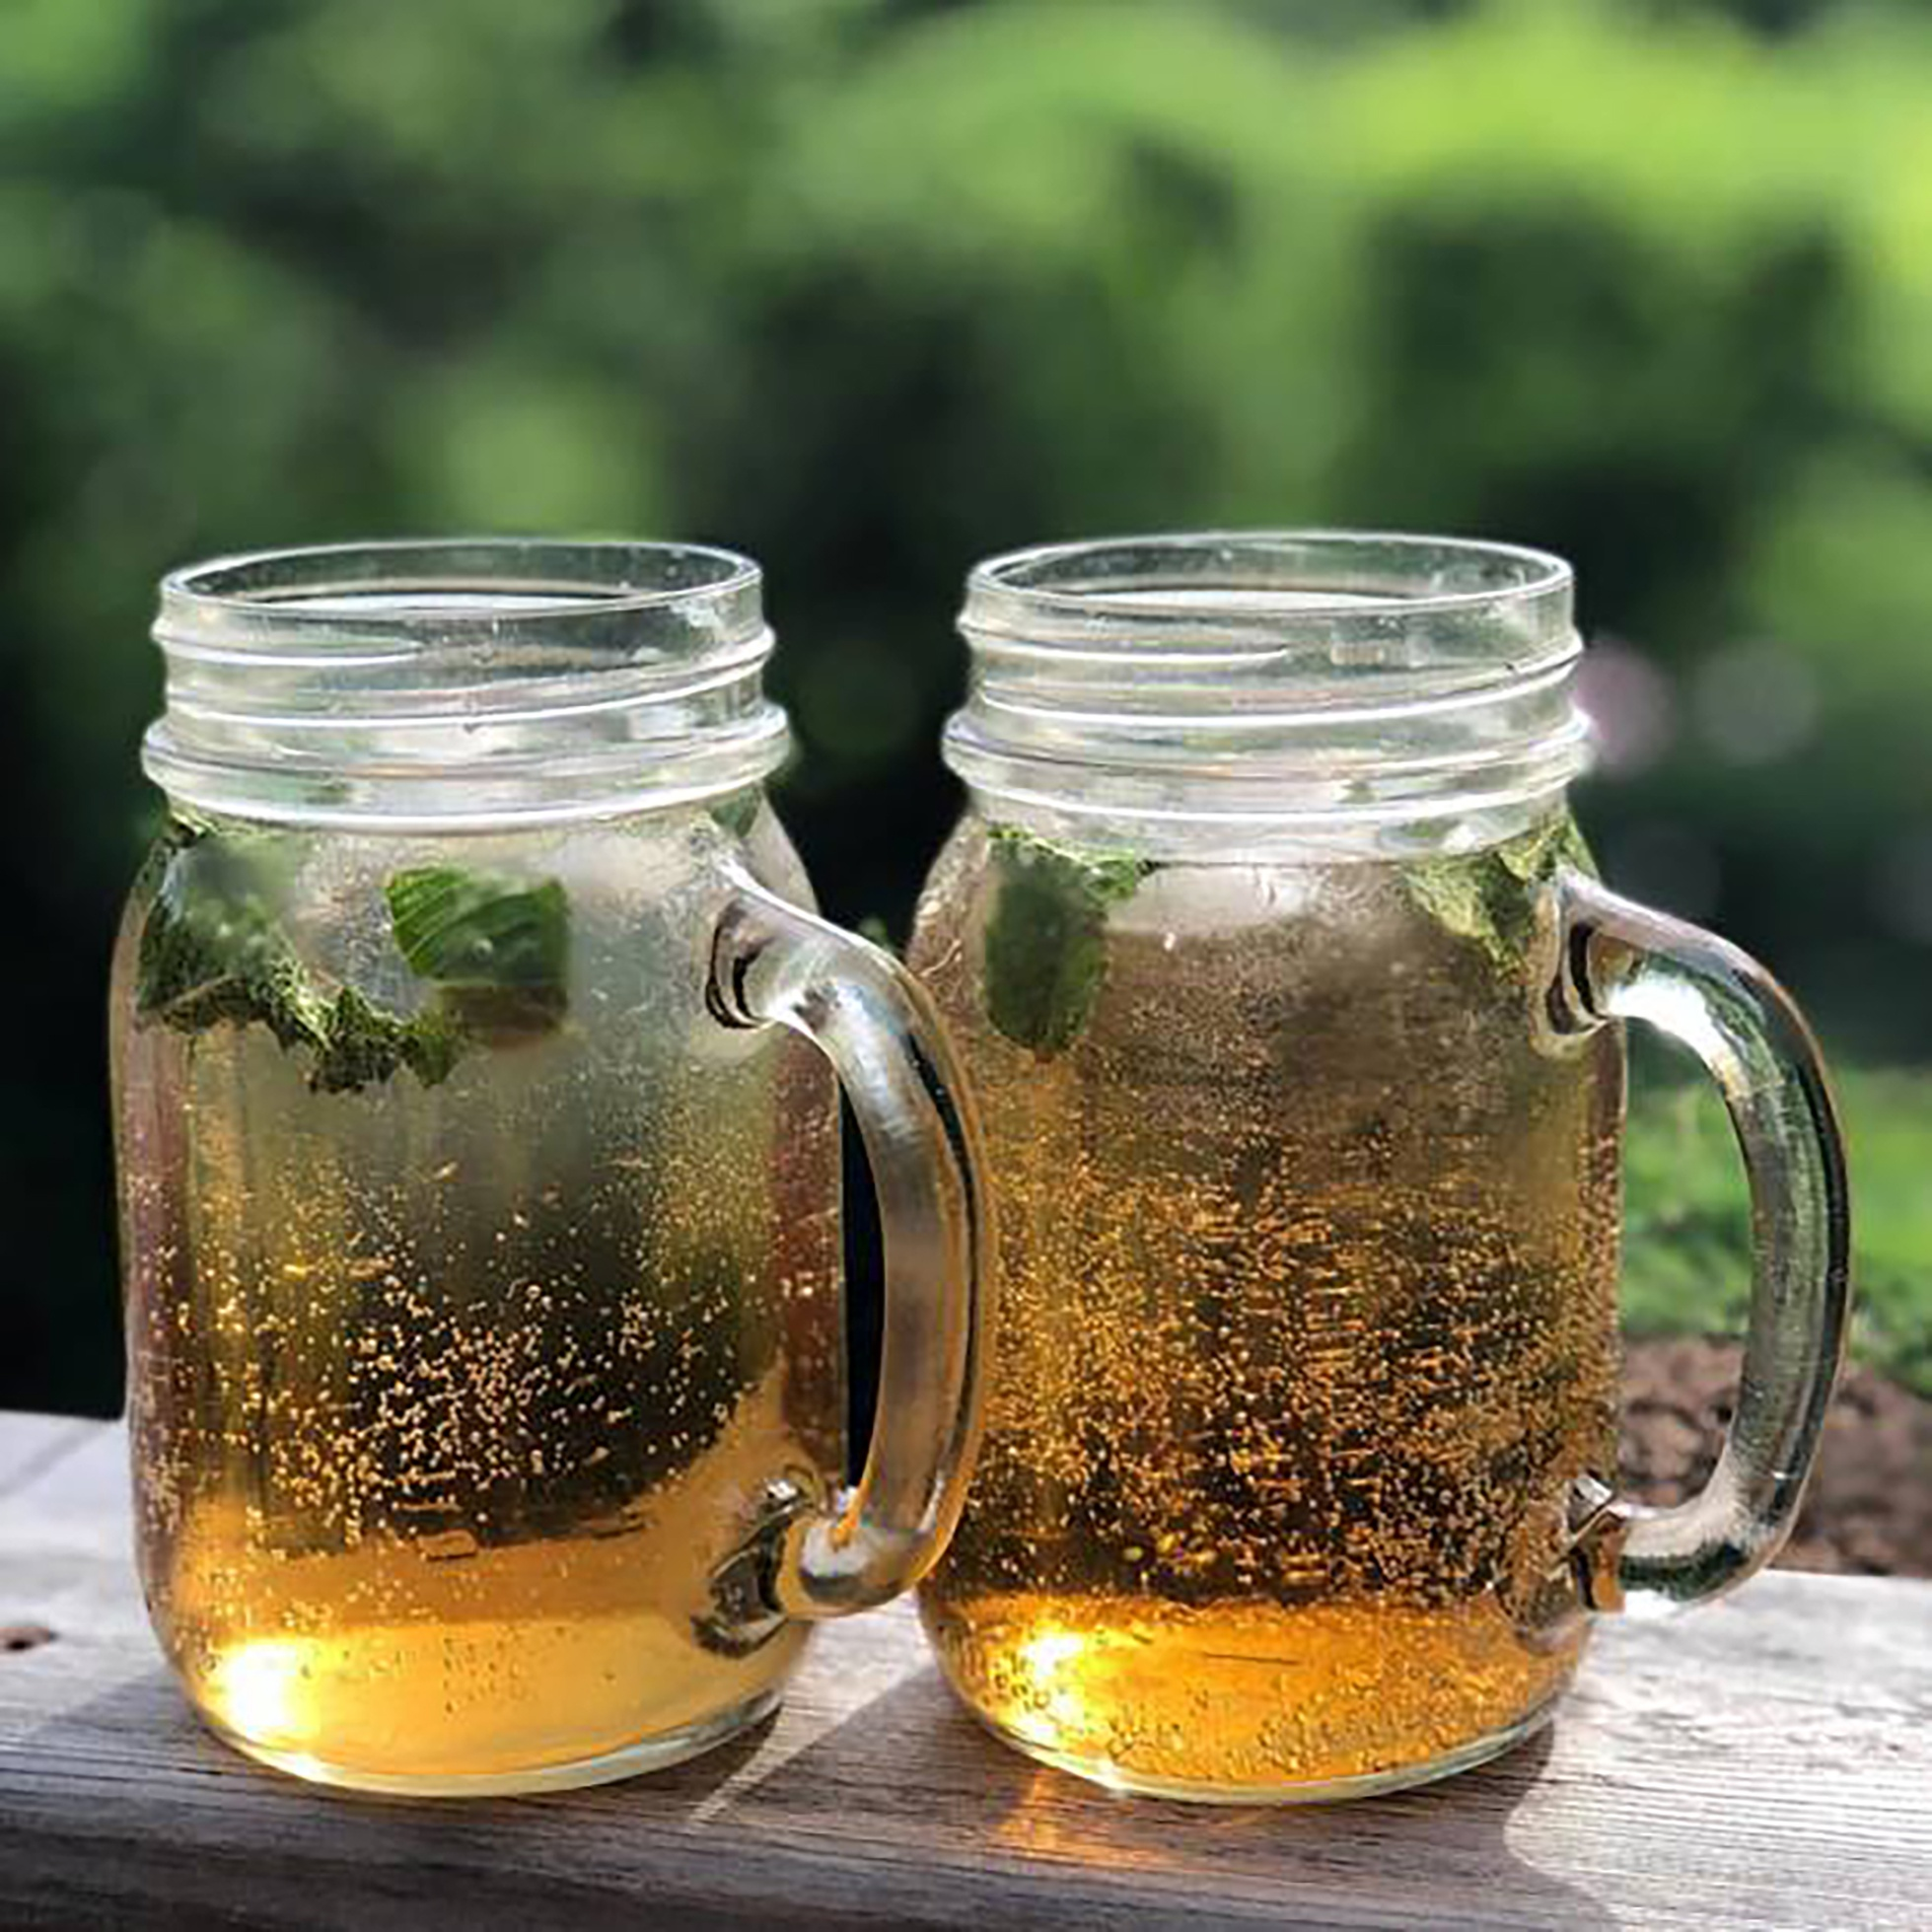 Two handles mason jars will with fizzy botanical beverages